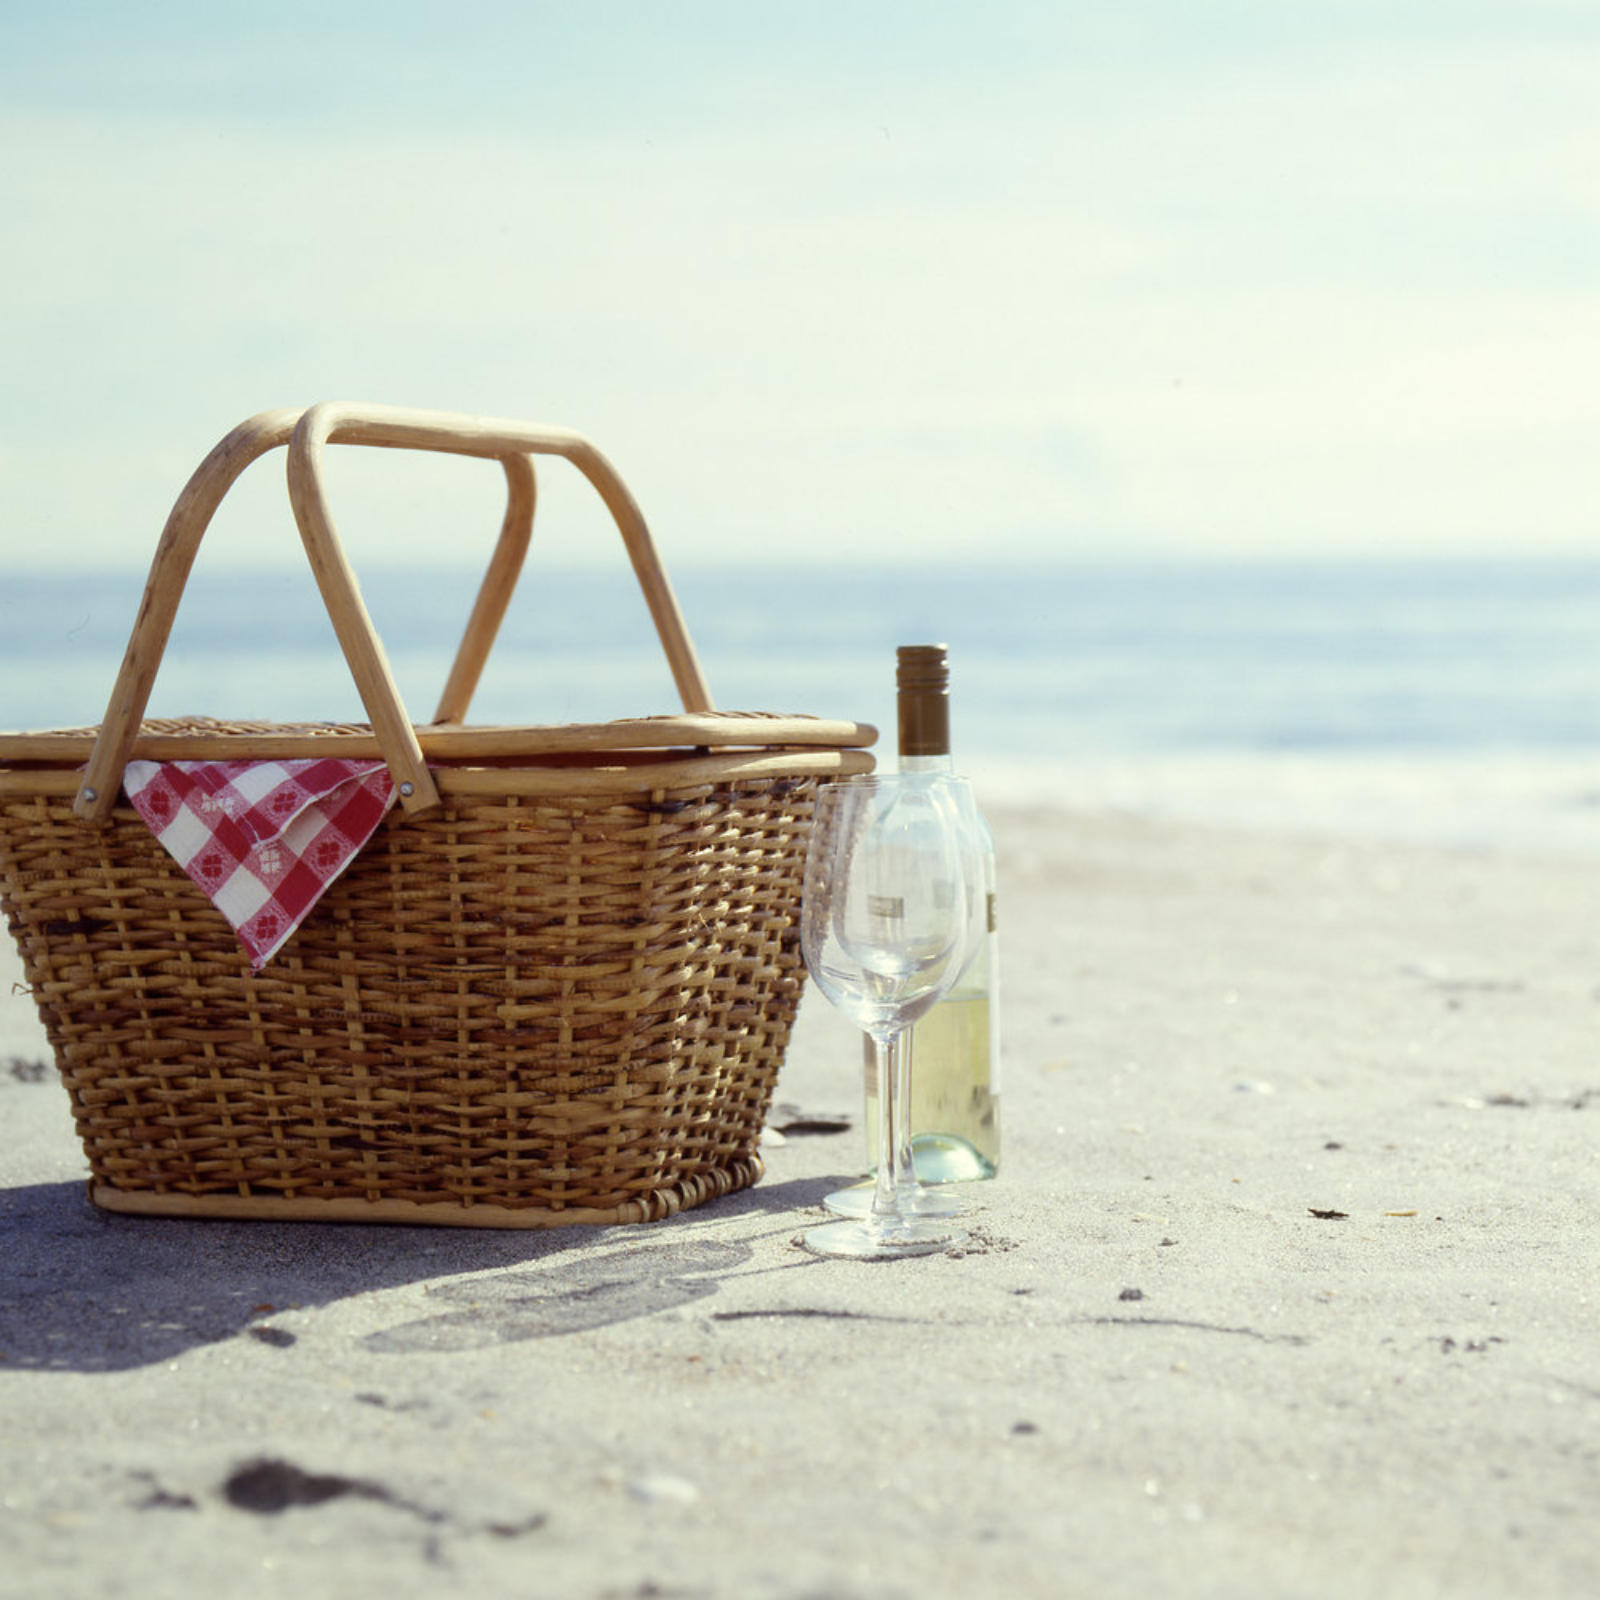 Beach white wine picnic gettyimages 200569693 002